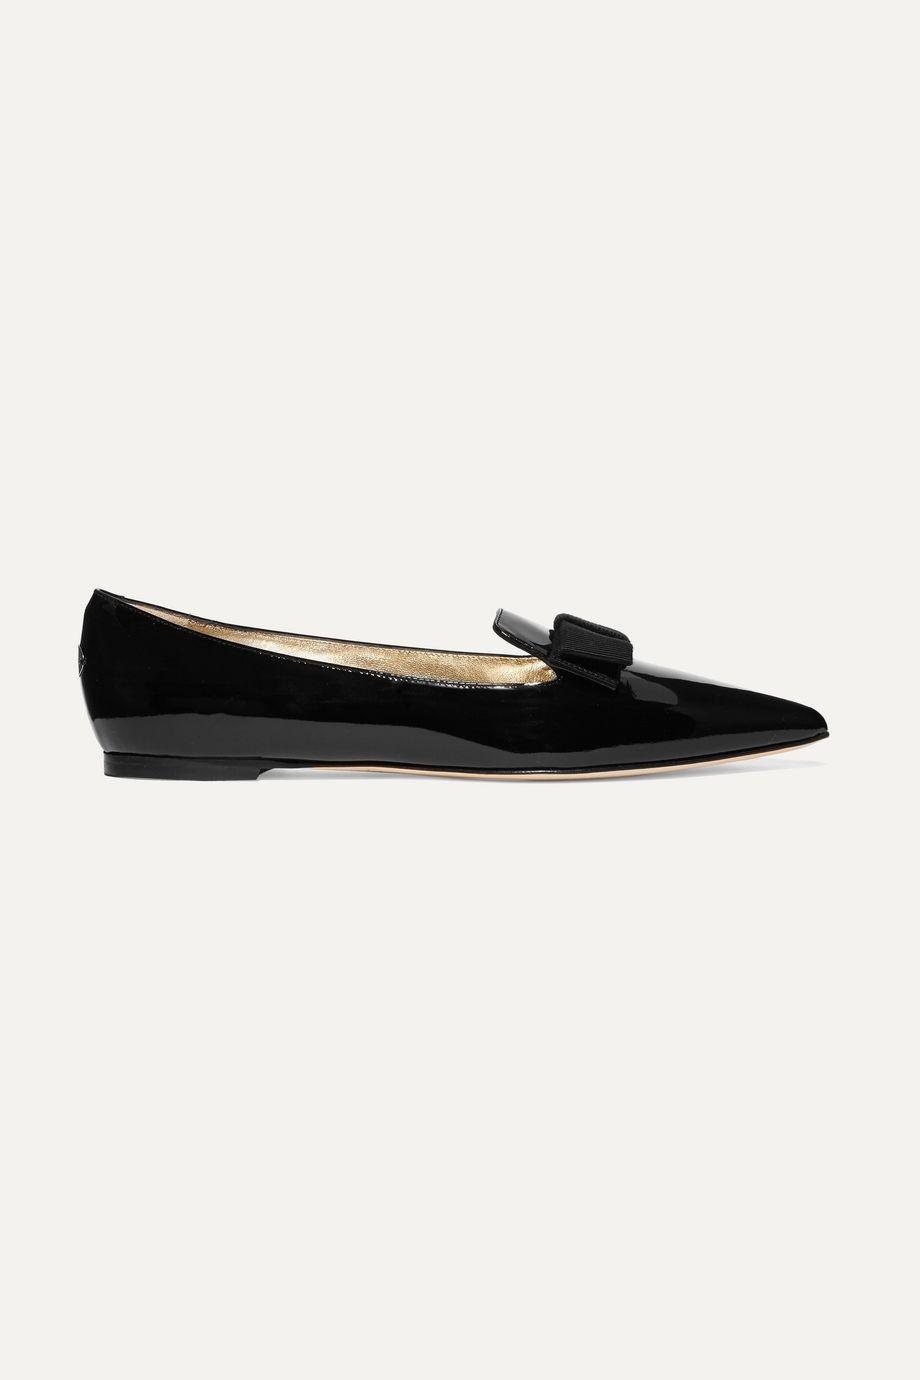 Jimmy Choo Gala grosgrain-trimmed patent-leather point-toe flats